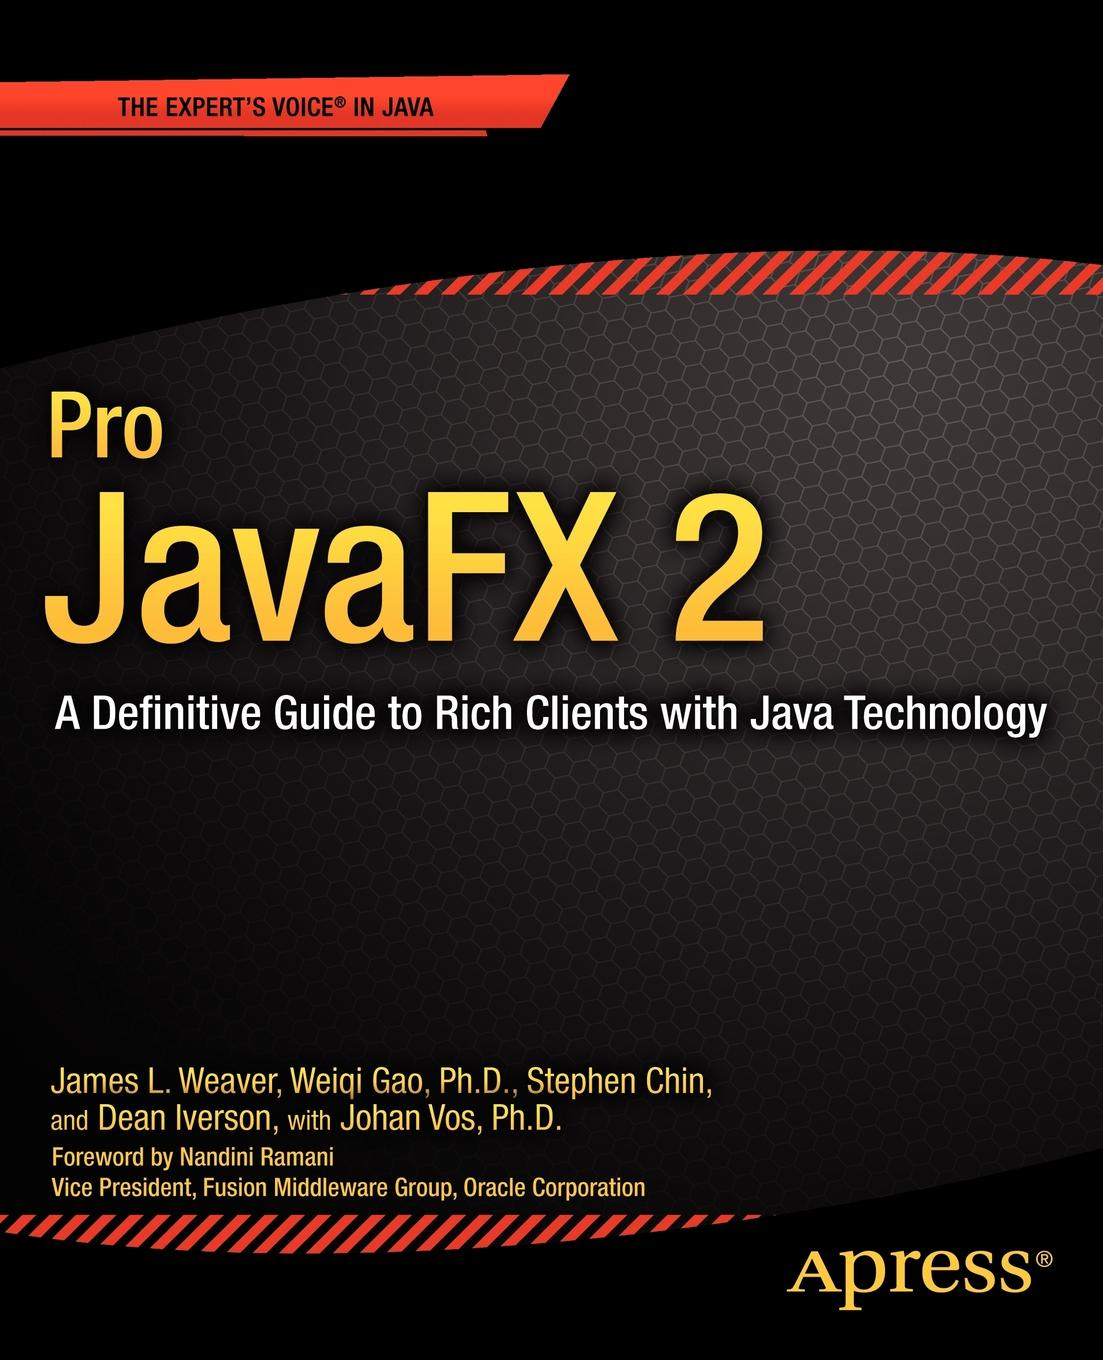 цена на James L. Weaver, Stephen Chin, Weiqi Gao Pro Javafx 2. A Definitive Guide to Rich Clients with Java Technology